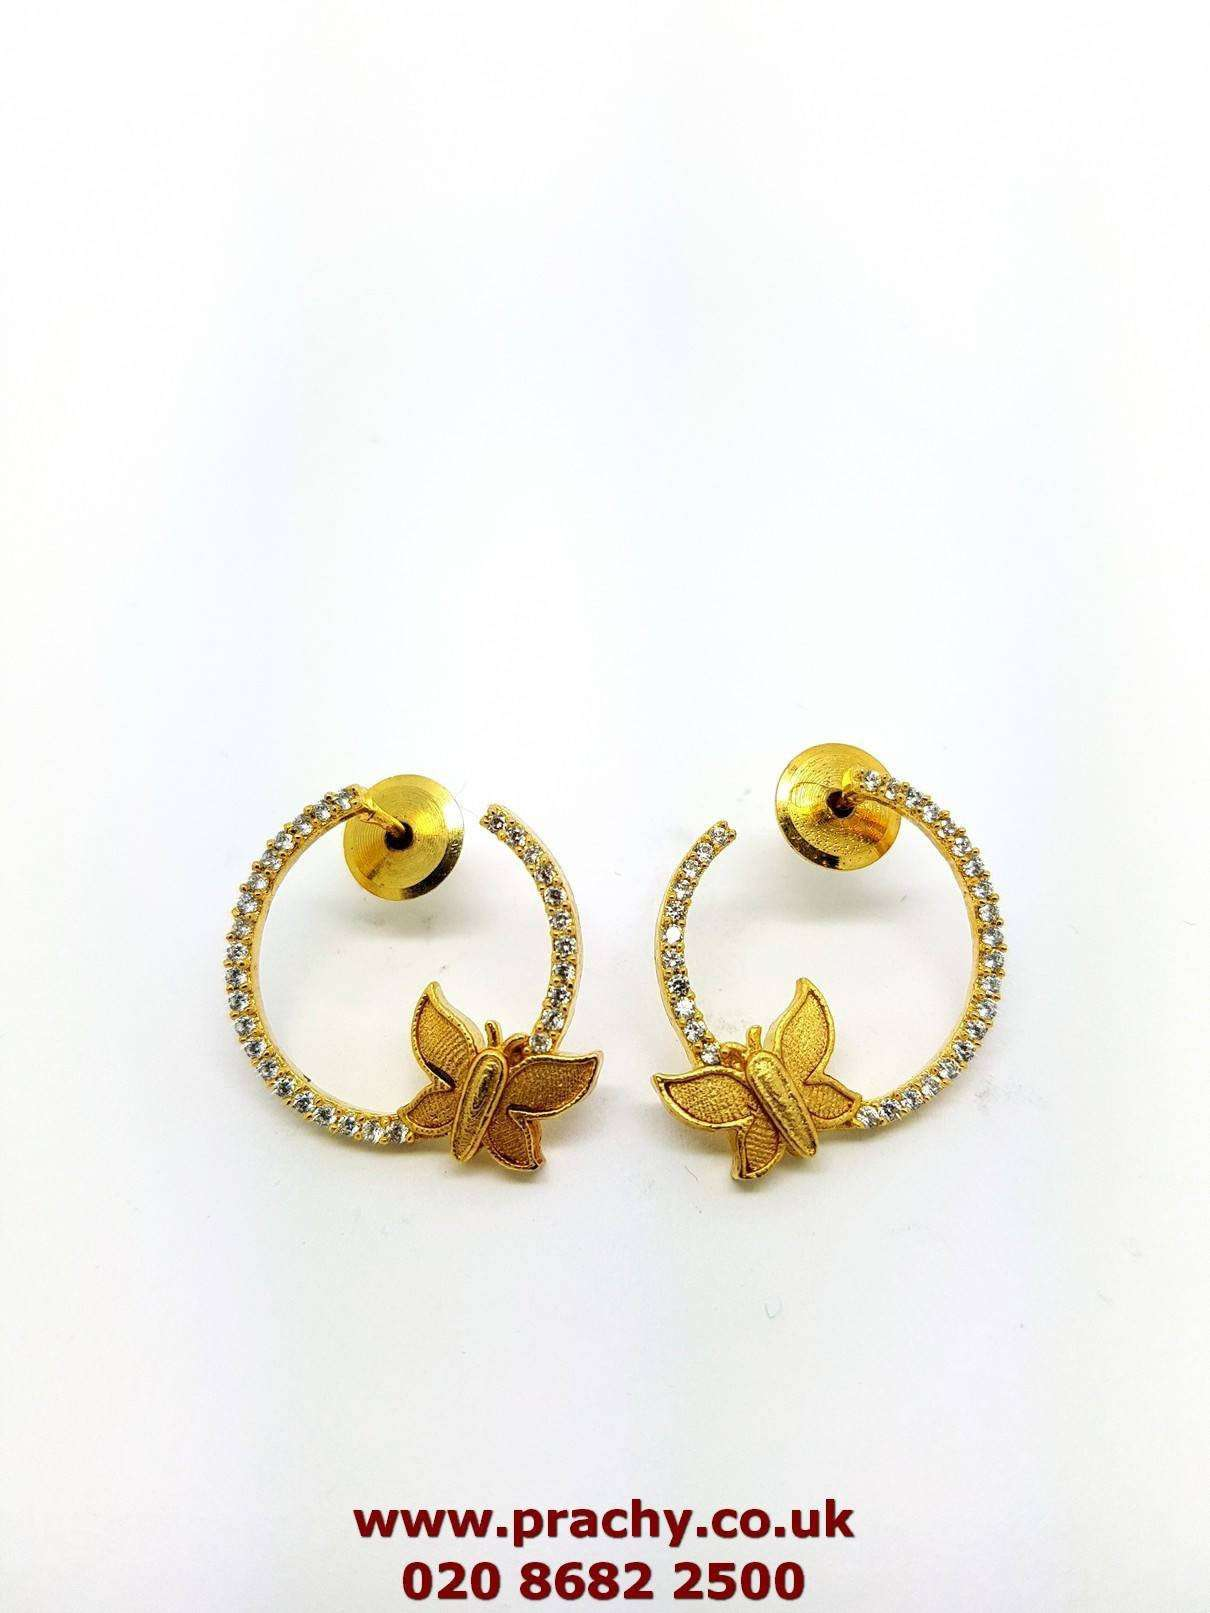 AJER 1719 tp 0217 AD Stud earrings - Prachy Creations